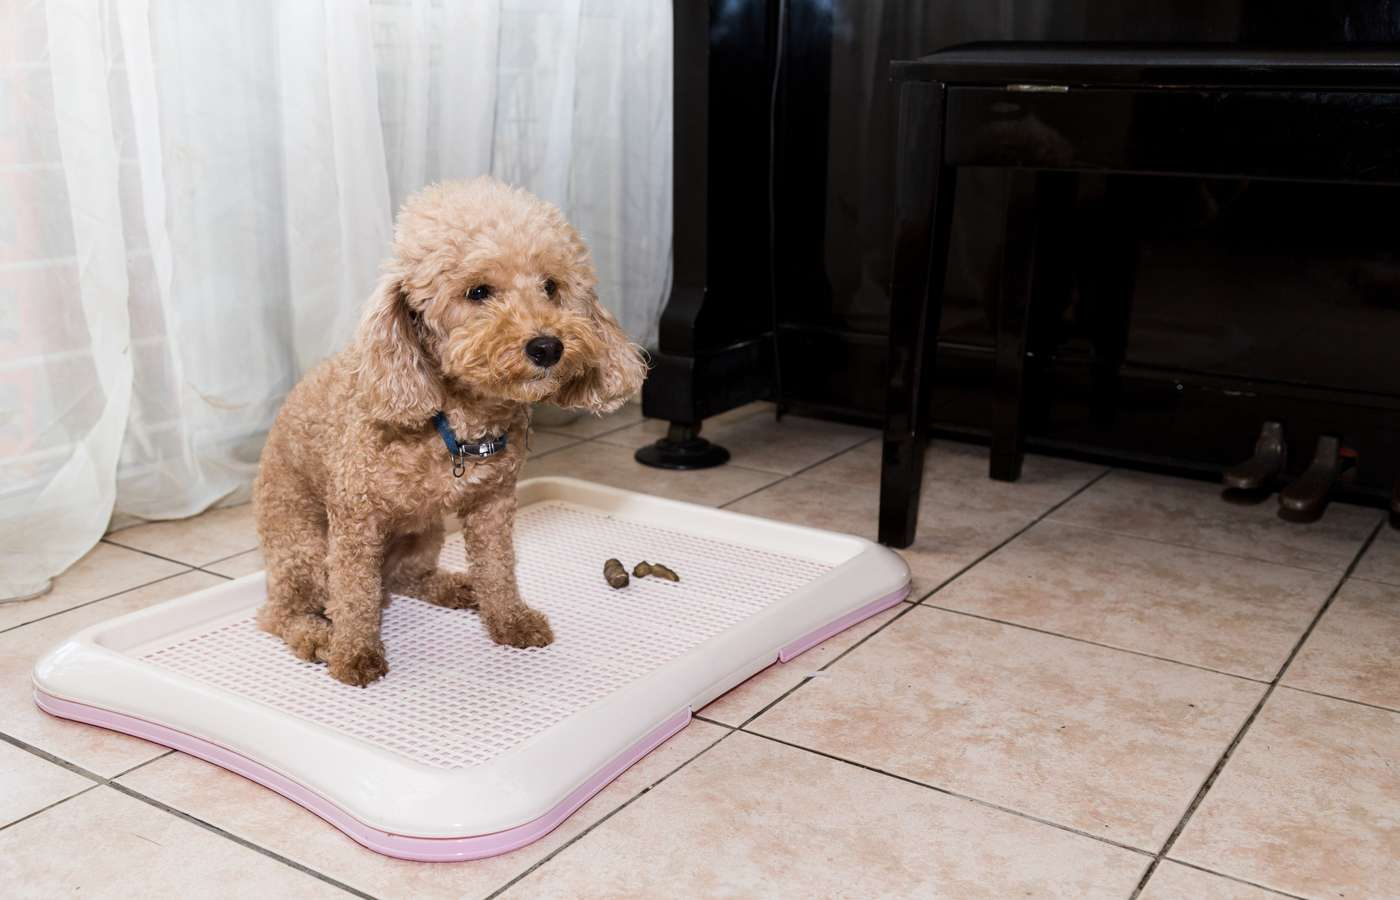 dog poop pee pads training poodle toilet pad dogs tray faeces puppy indoor dreamstime feces royalty